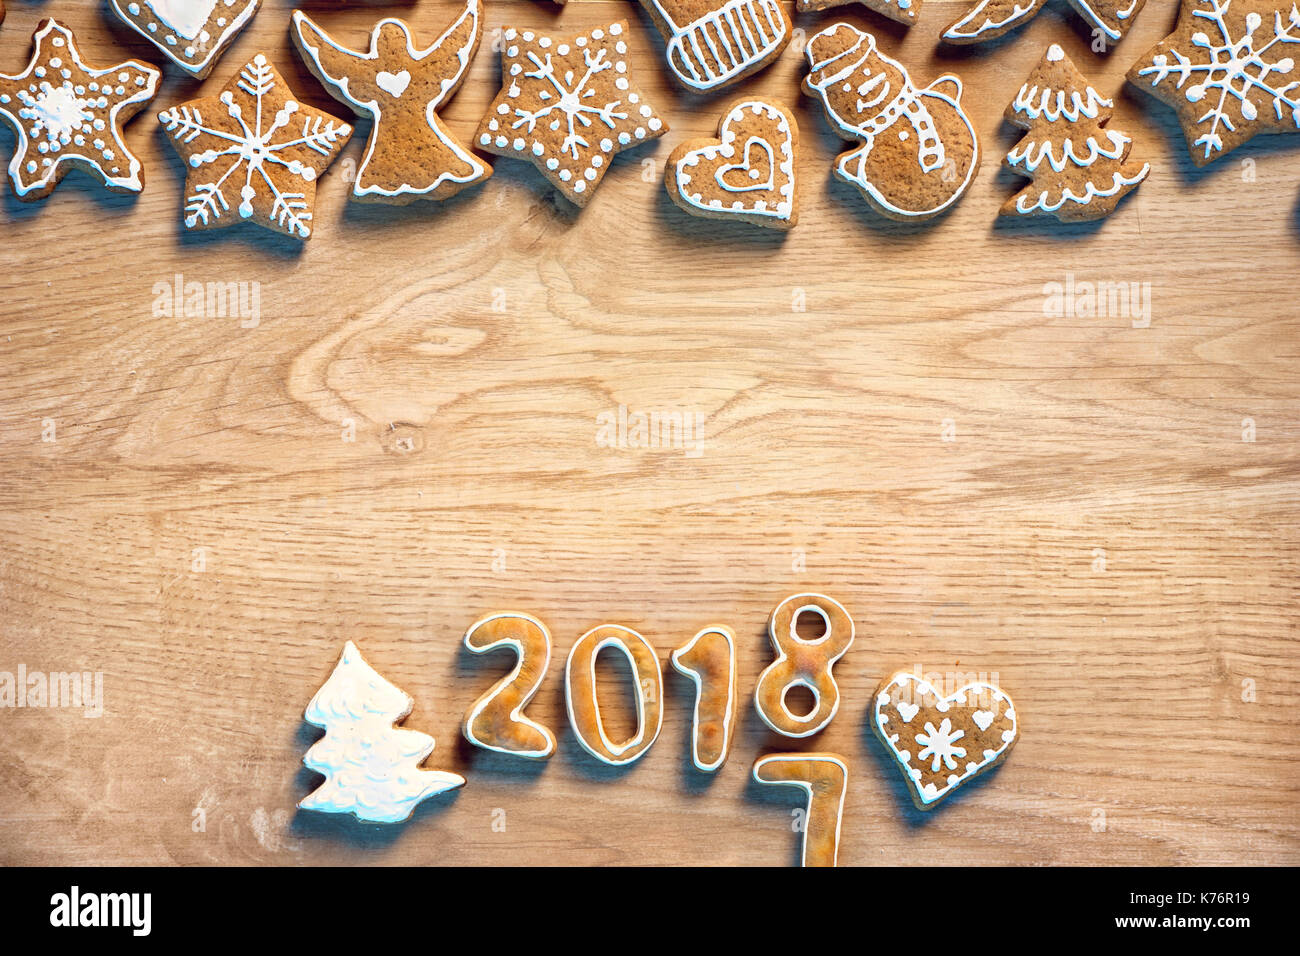 Merry X-mas! Homemade cookies on wooden background. Copy space for your text. Top view. High resolution product - Stock Image